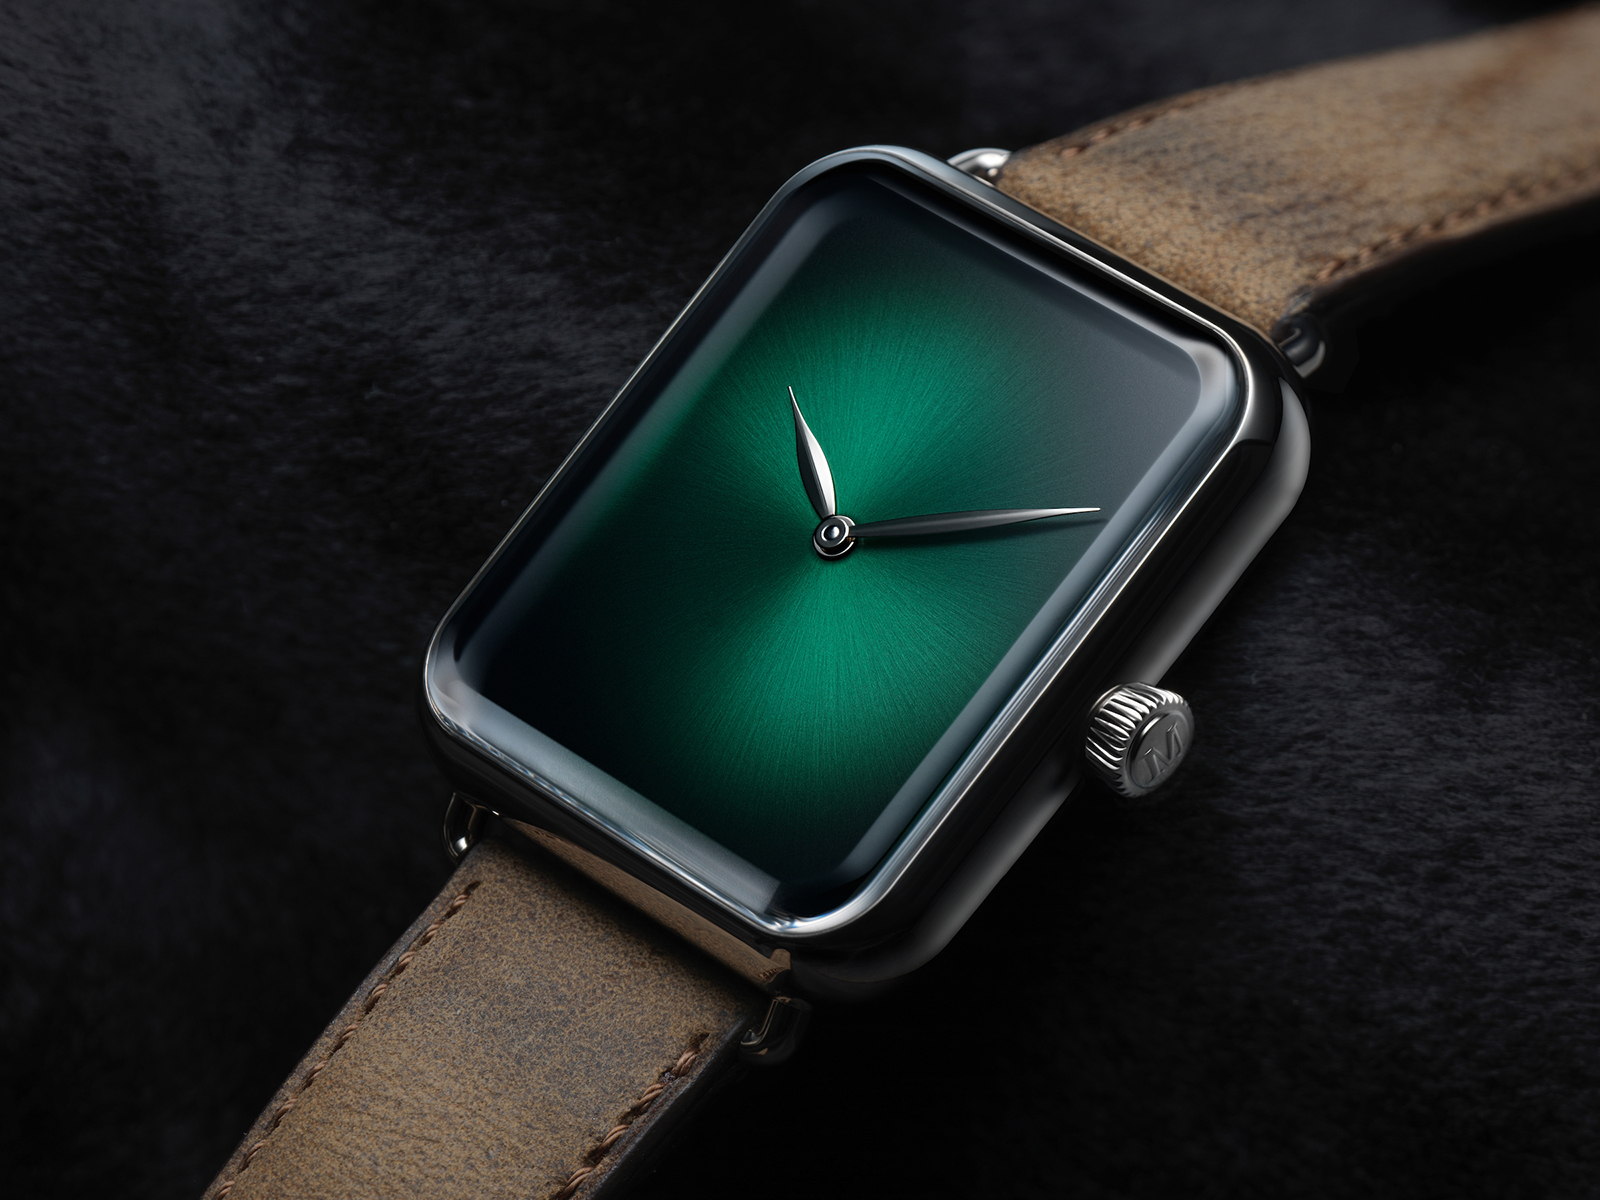 H. Moser & Cie. Swiss Alp Concept Watch Cosmic Green